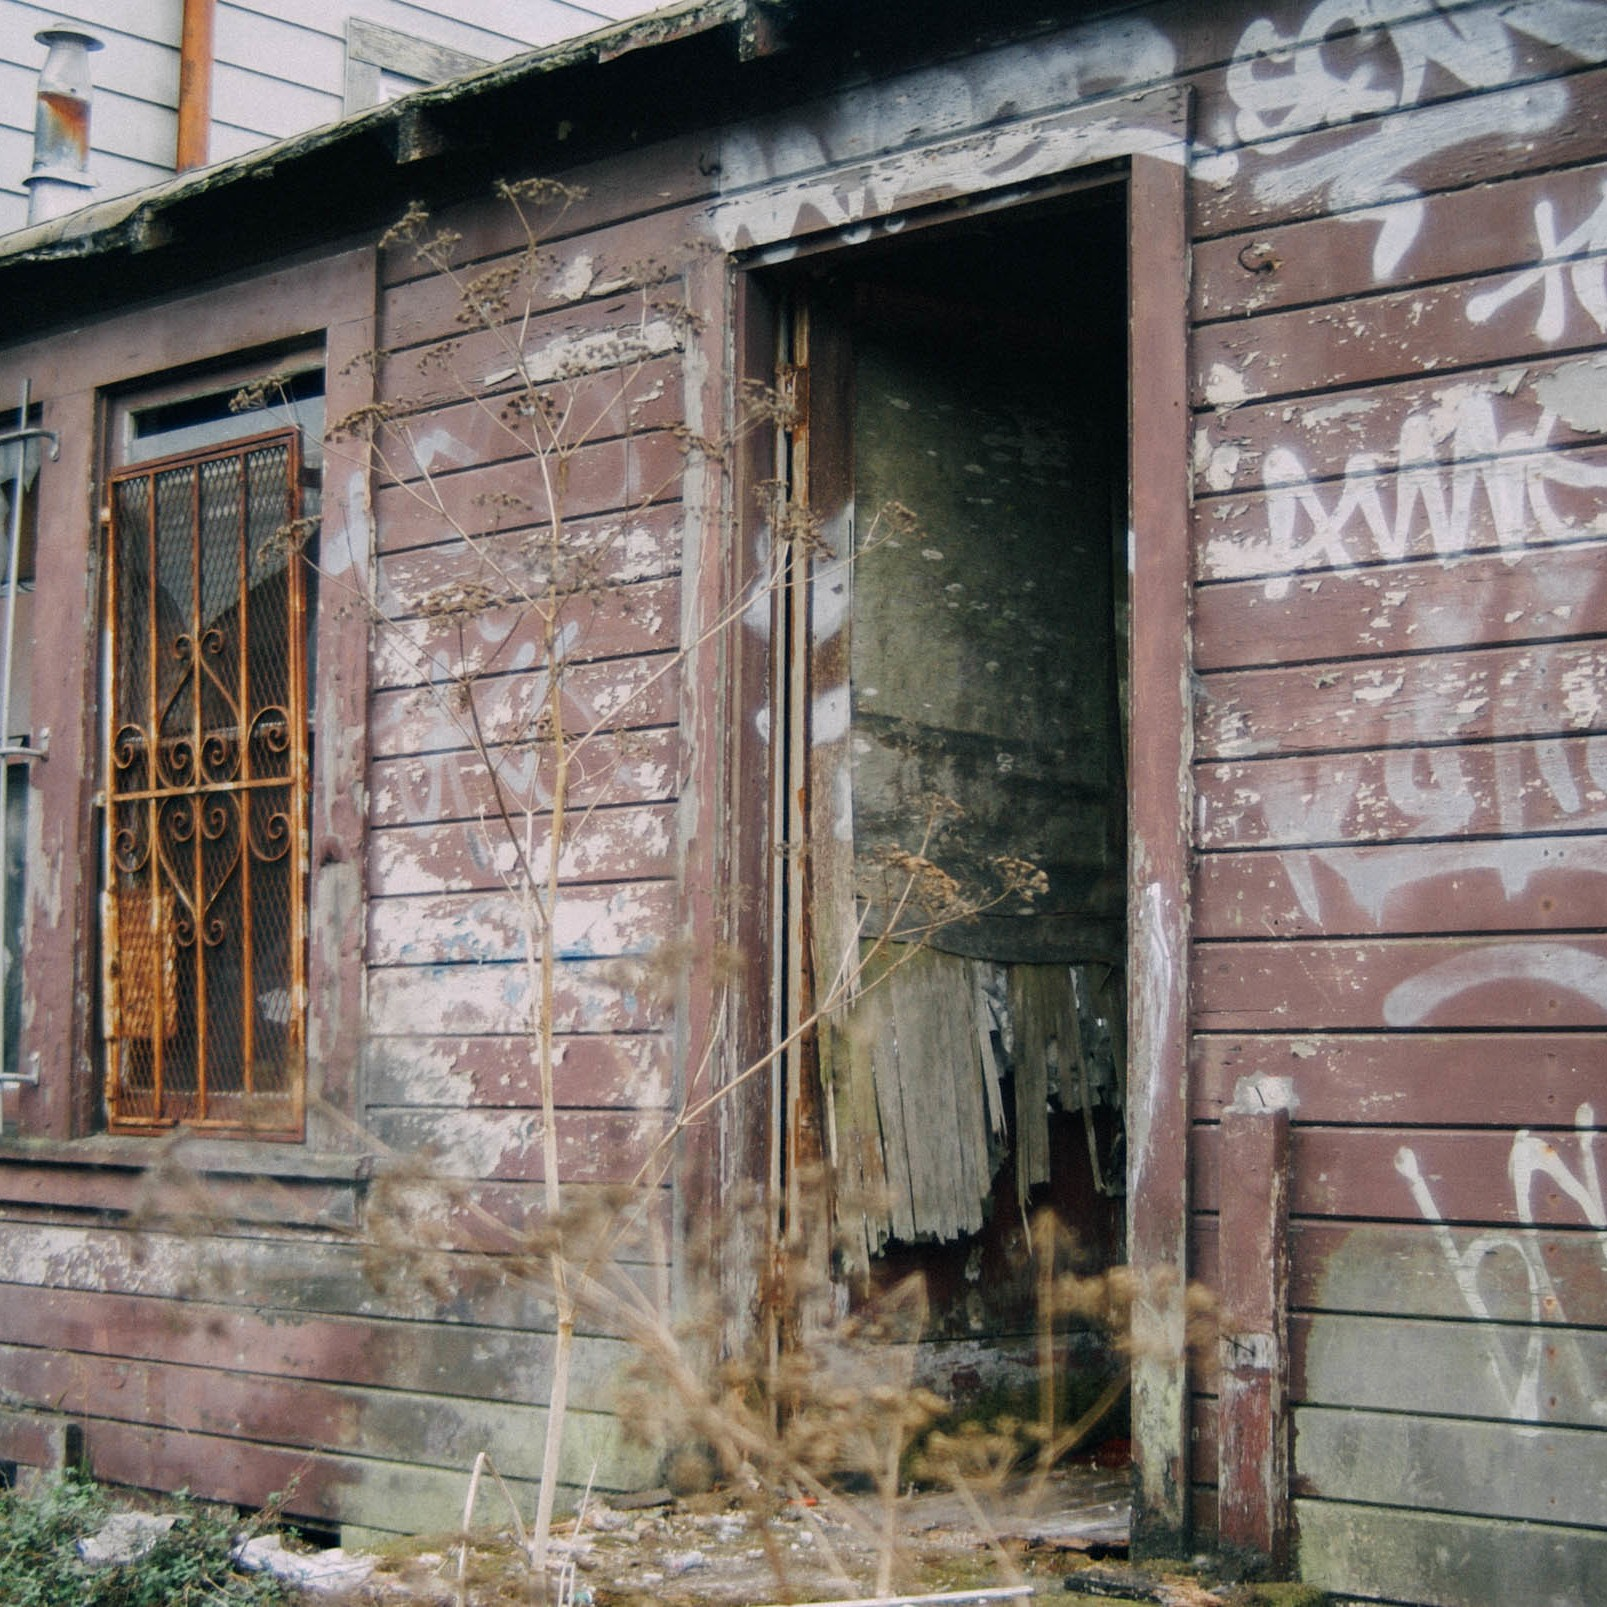 House hunters san francisco bay - The Cheapest Property In San Francisco Is A Dilapidated Shack Selling For 350 000